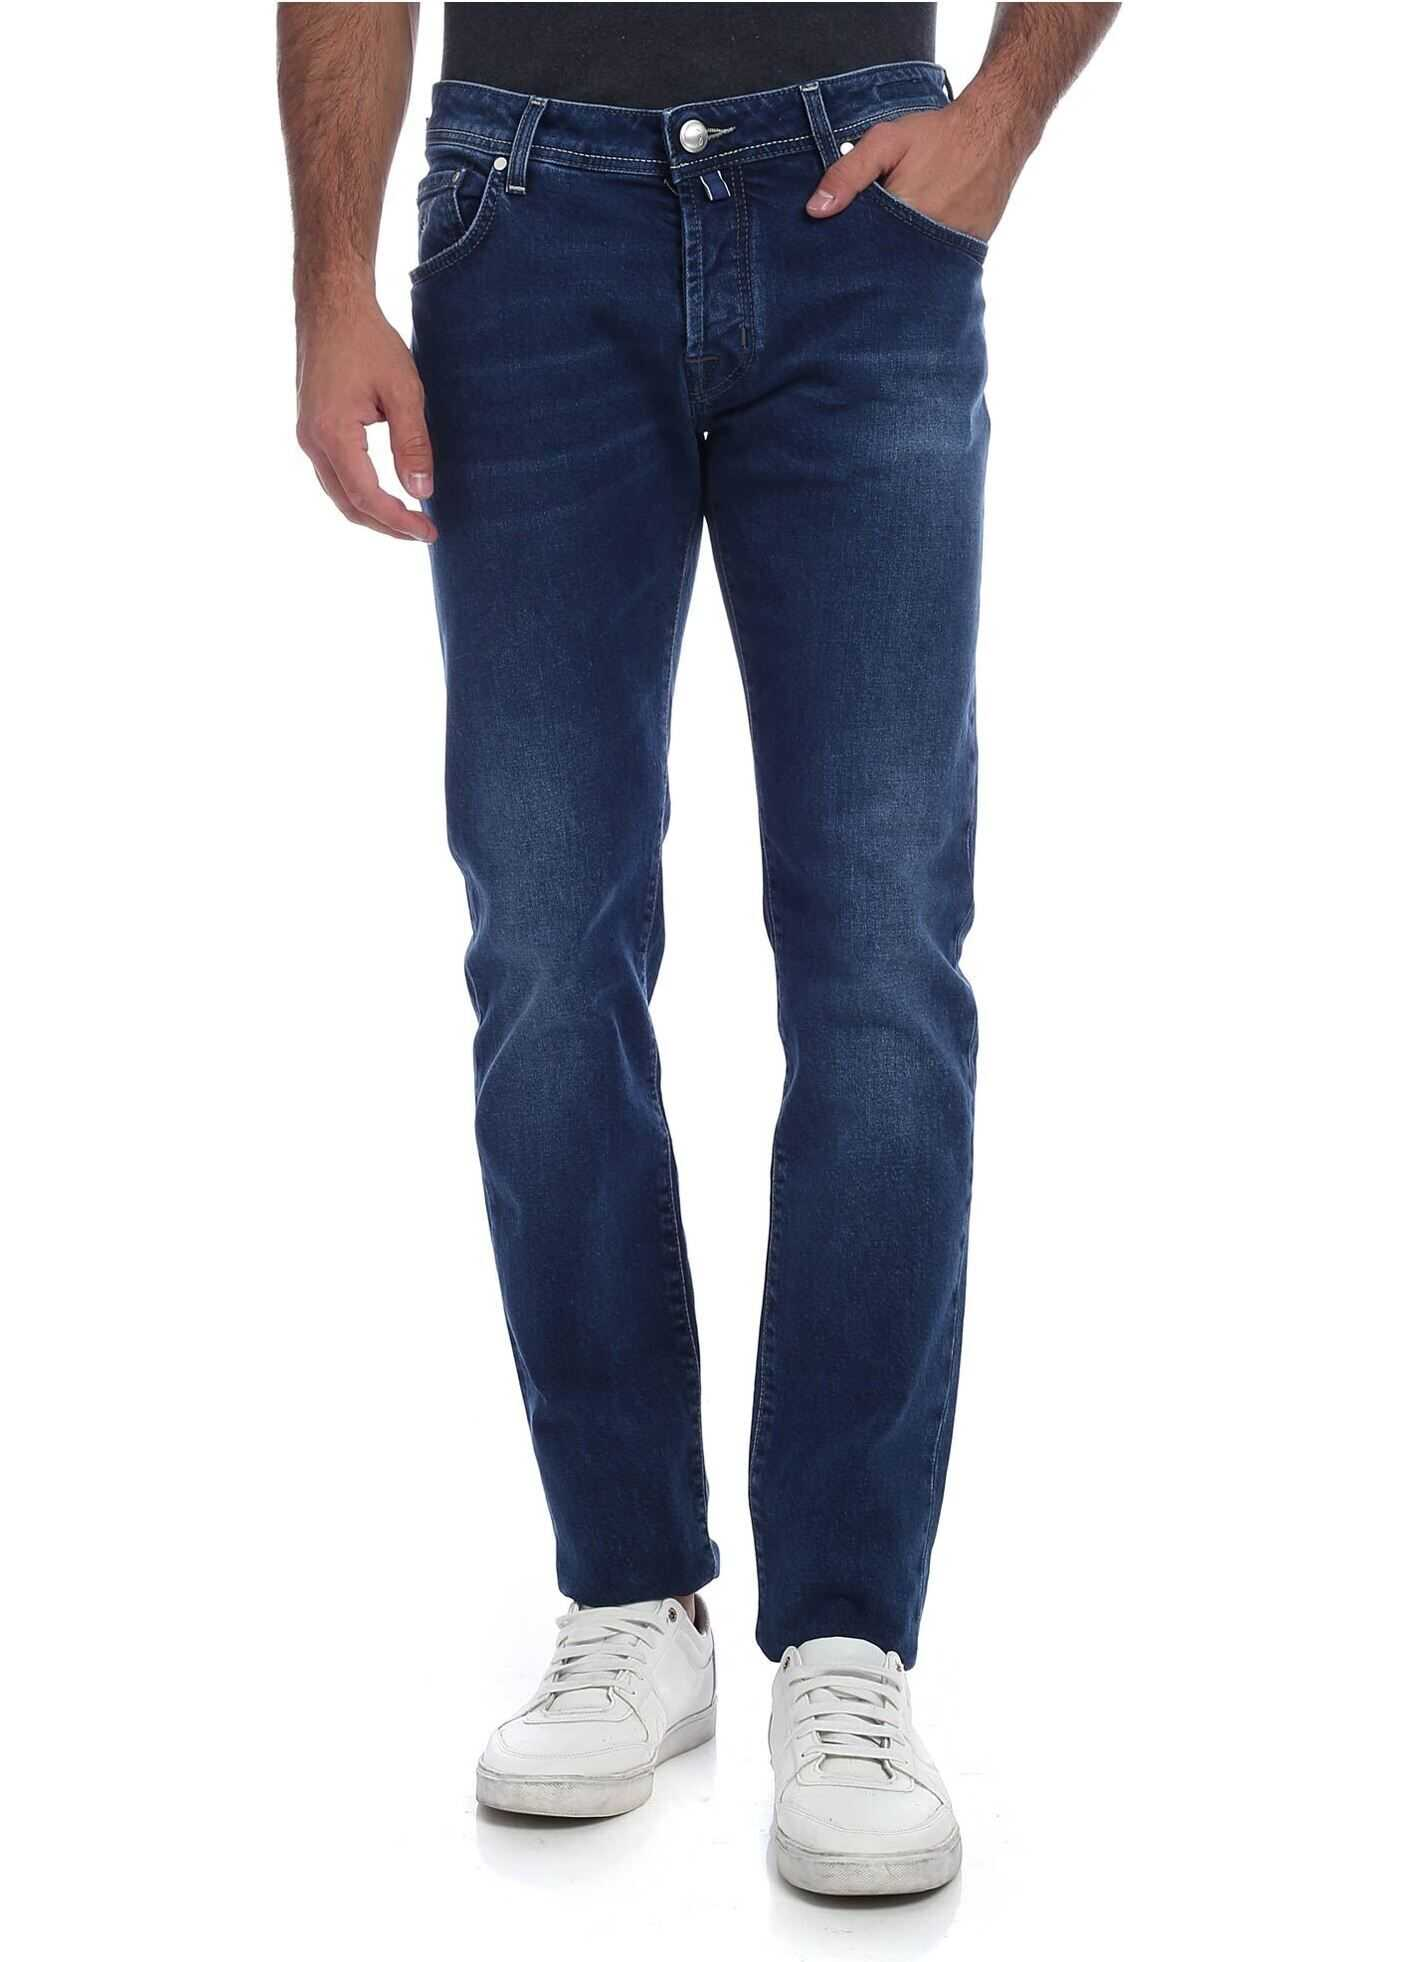 Blue Jeans With Electric Blue Logo thumbnail